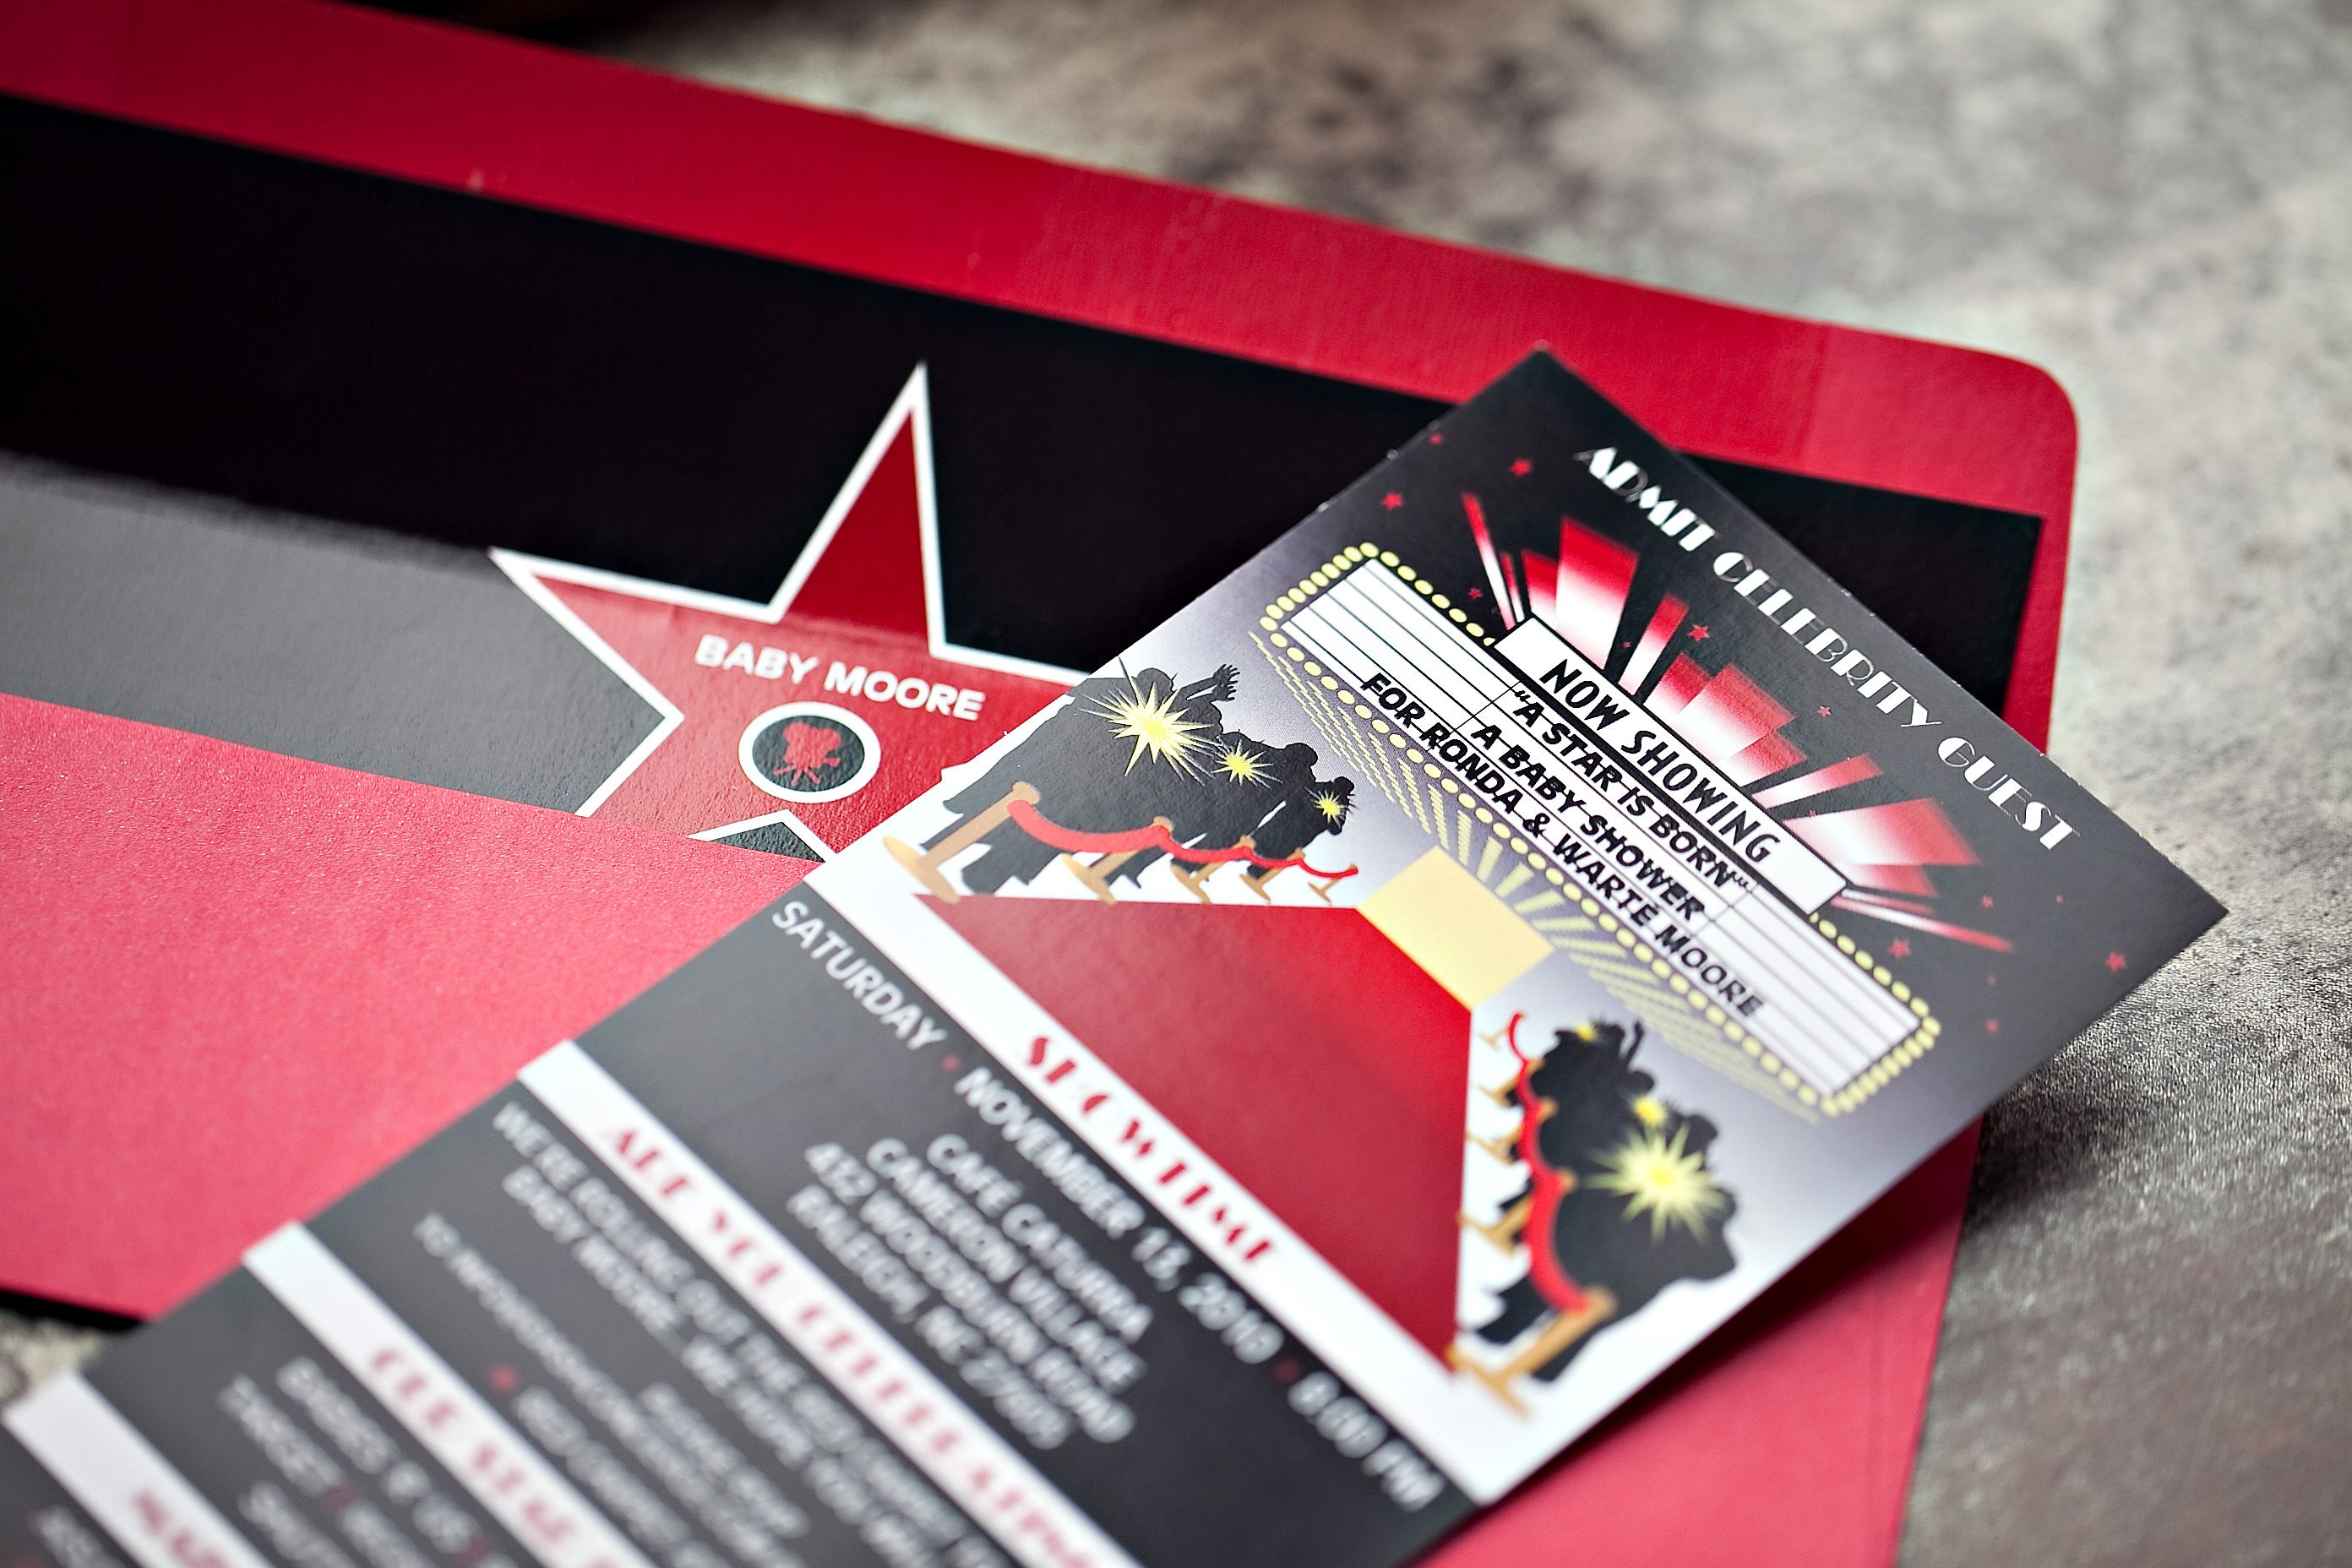 Hollywood Theme Invitations Red Carpet Inspired LEPENN DESIGNS